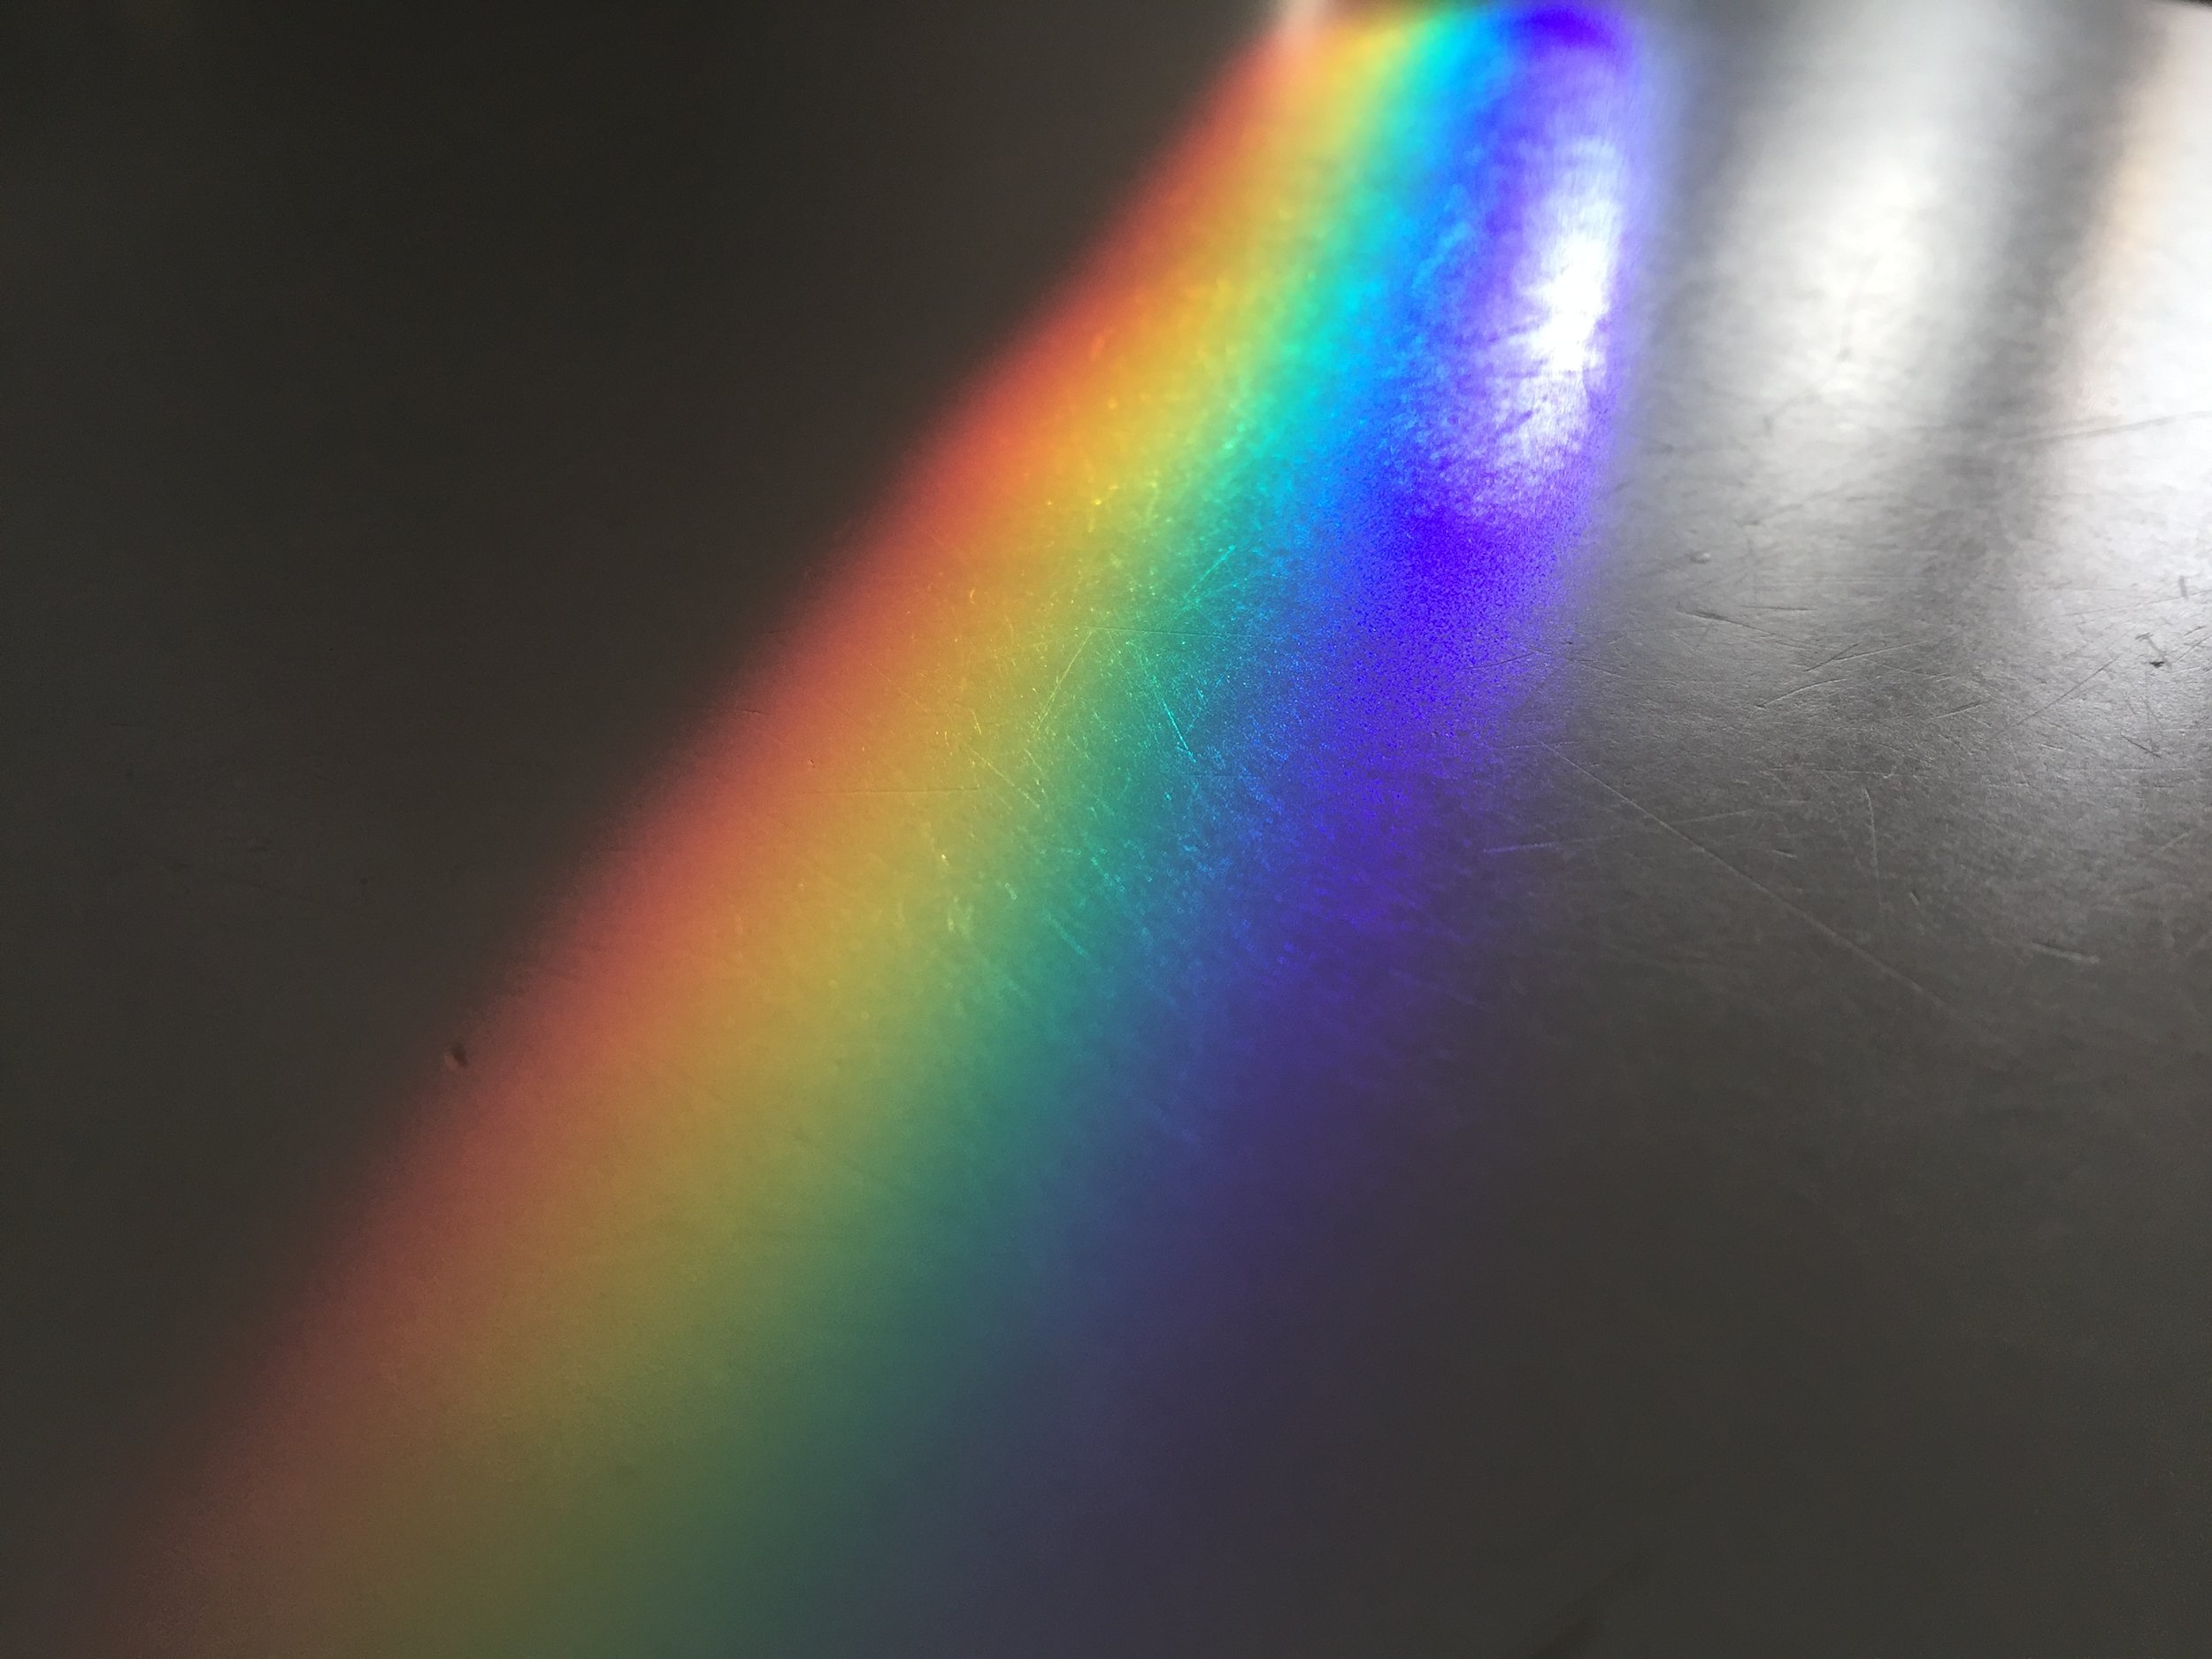 Rainbows are a beautiful example that all colours are present in white light.